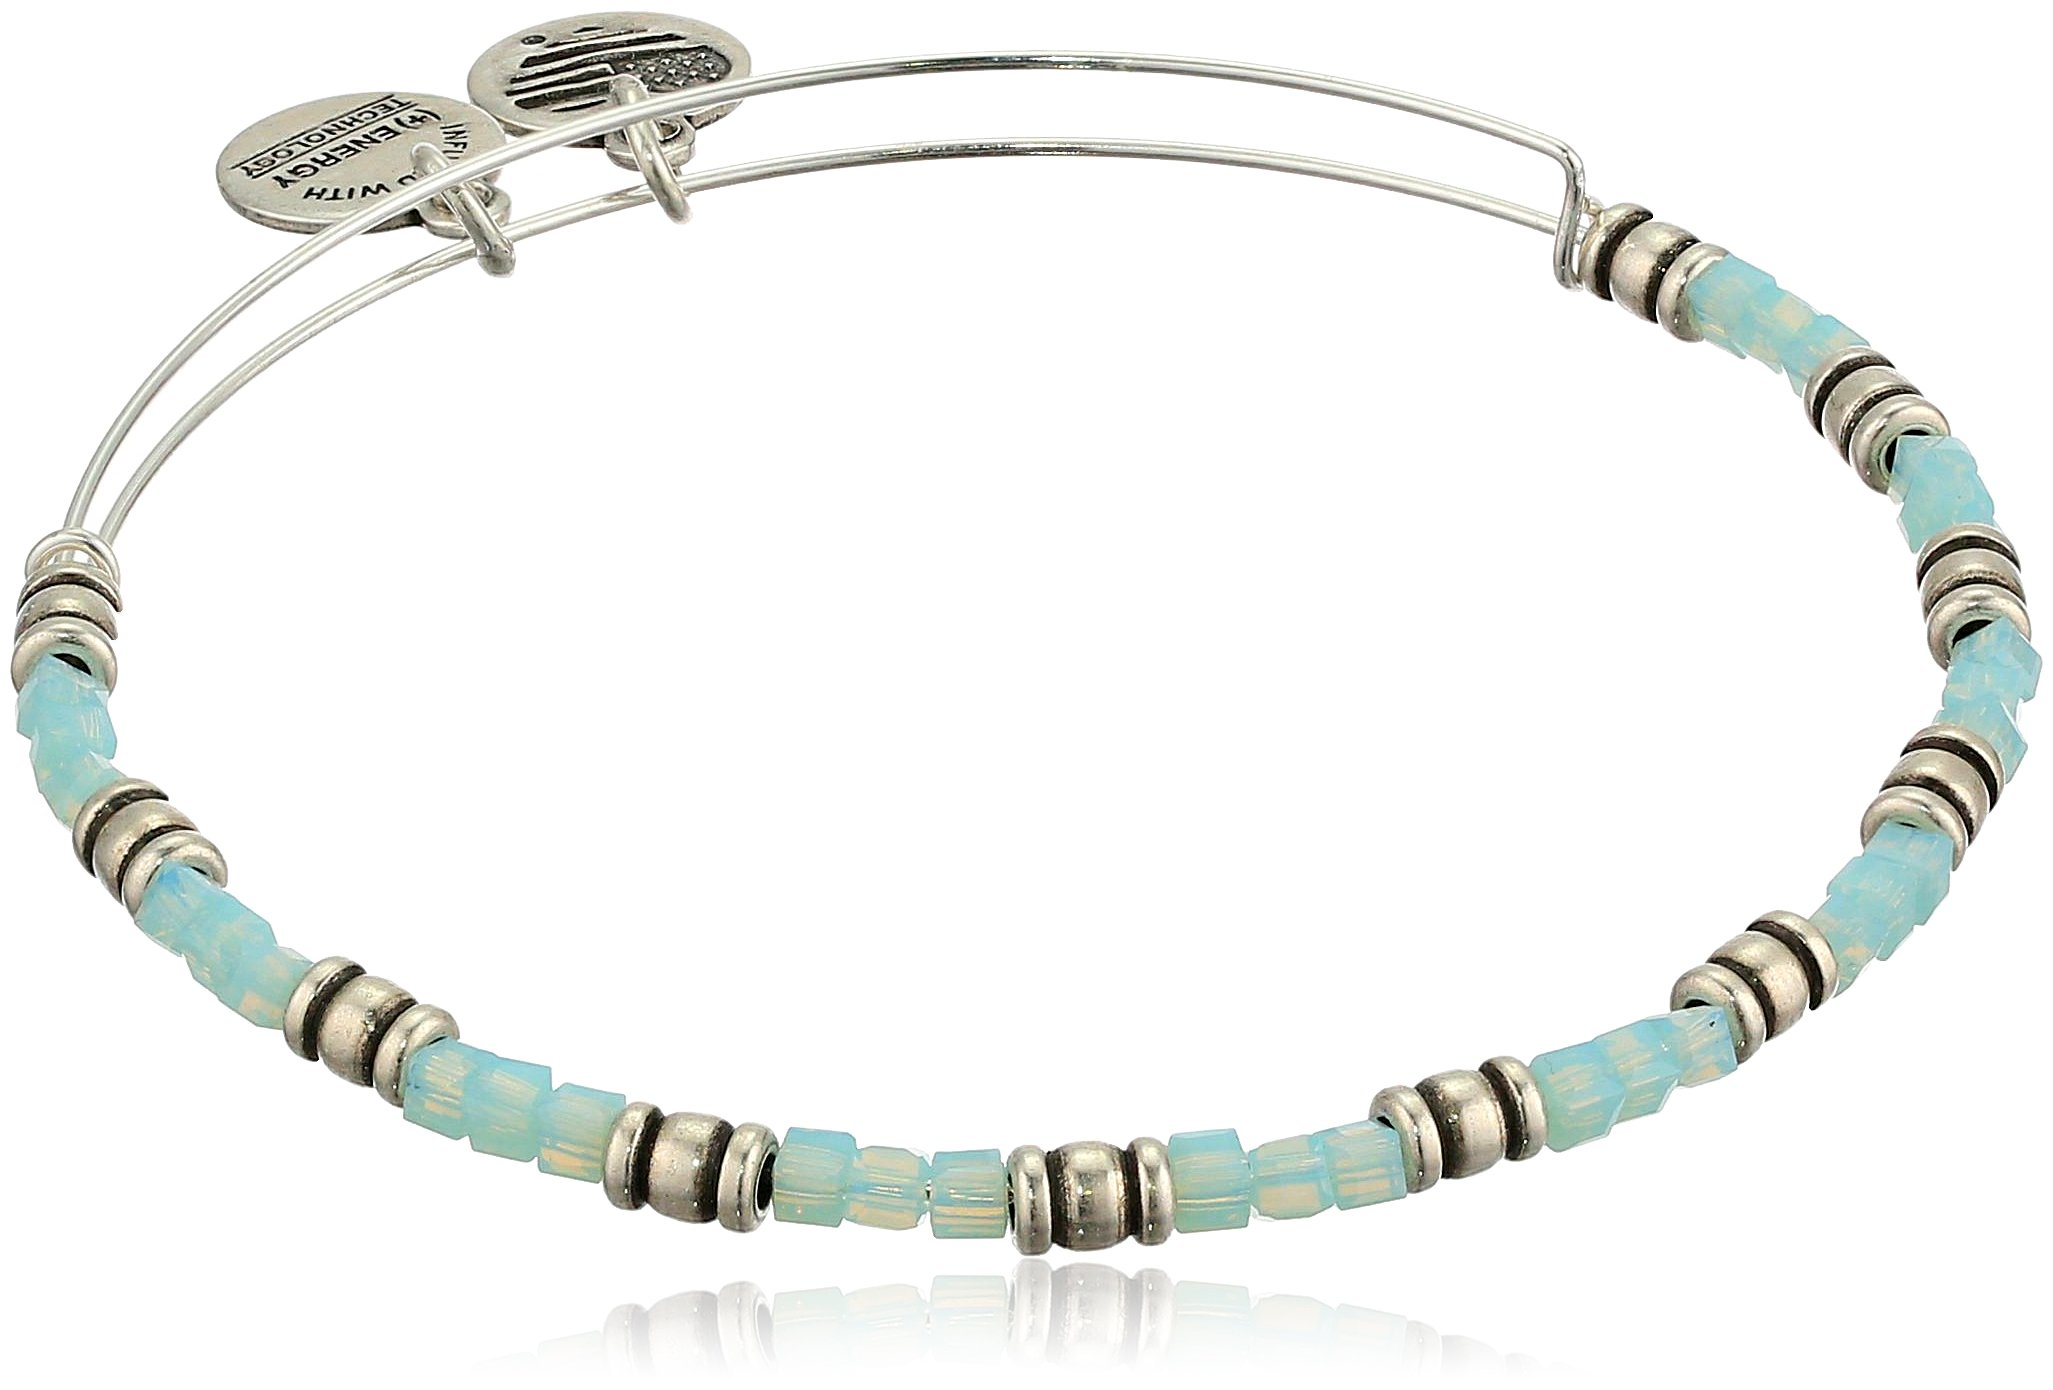 Alex and Ani Women's Coastal Ocean Bangle Bracelet, Rafaelian Silver, Expandable